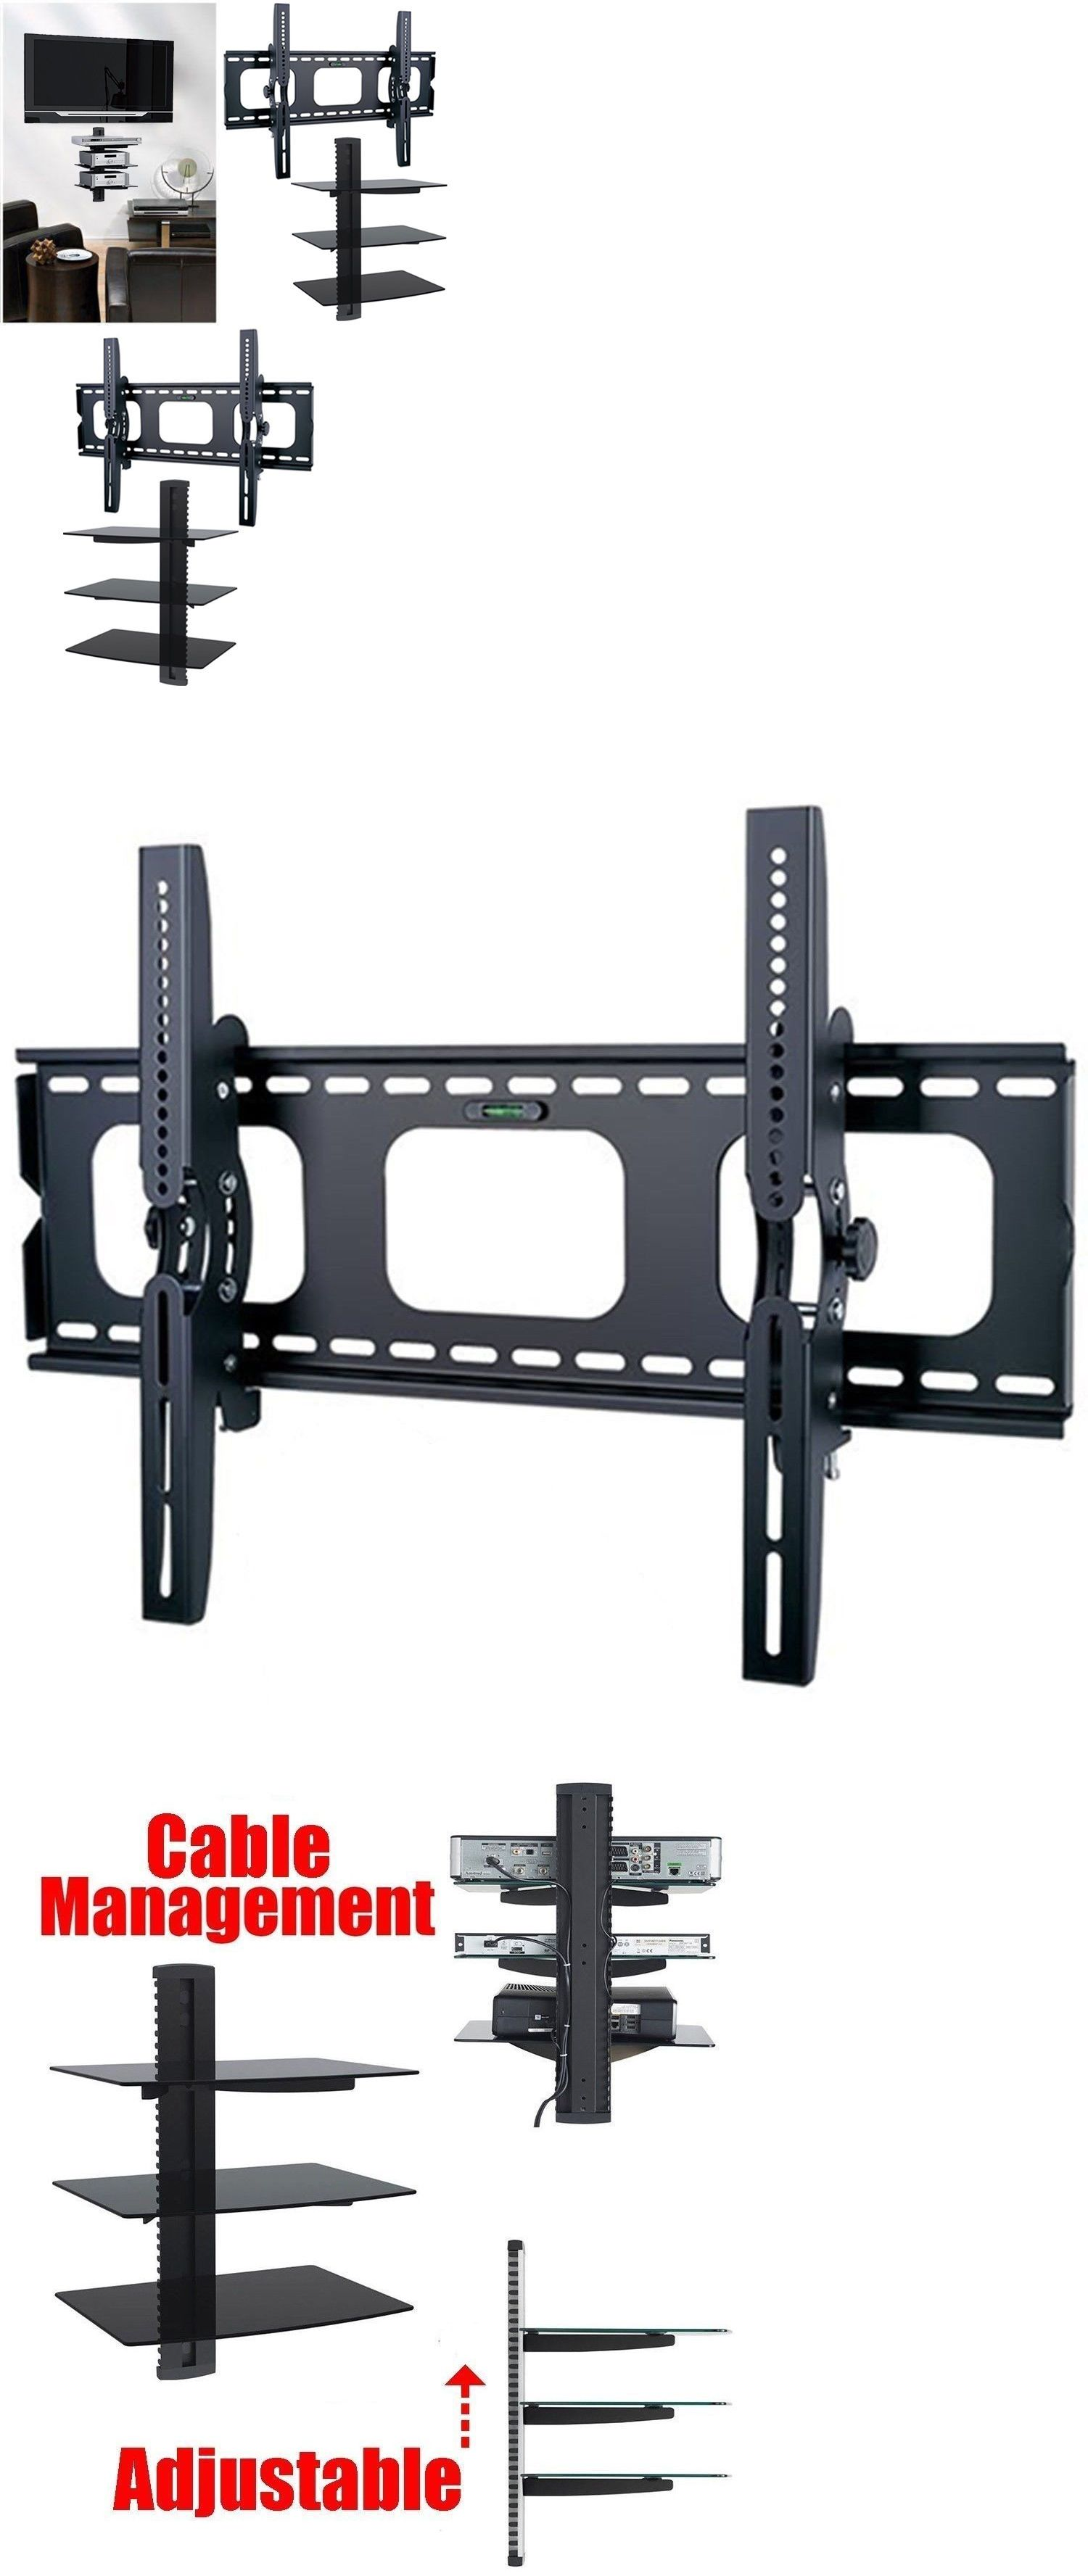 Tv Mounts And Brackets Tilt Tv Wall Mount With Shelf Shelves 3 Triple Shelf For 55 50 60 65 70 85 Buy It Now Only 64 9 Wall Mounted Tv Tv Wall Wall Mount